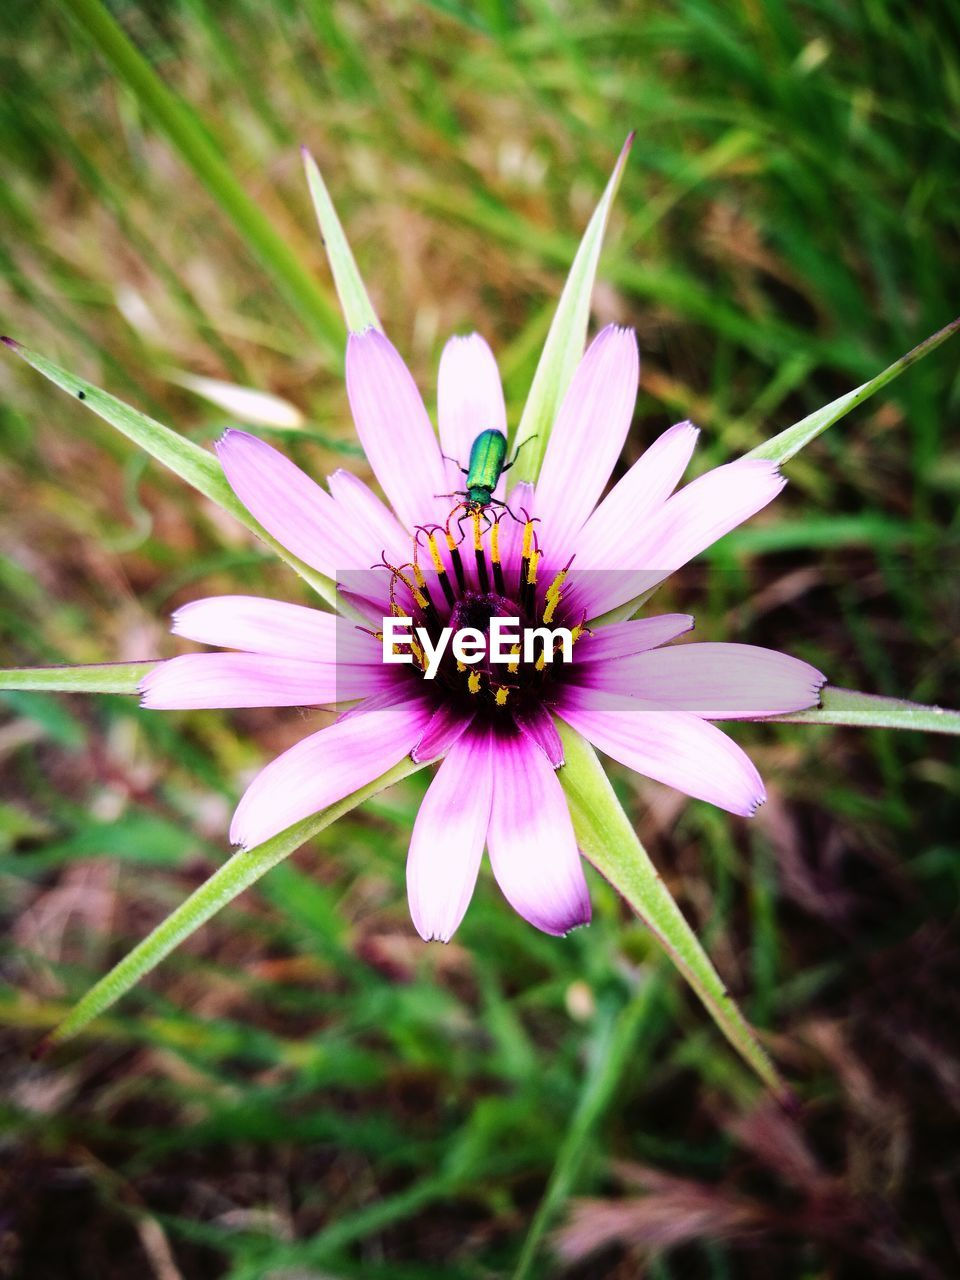 flower, petal, fragility, nature, flower head, beauty in nature, freshness, growth, purple, day, close-up, plant, pollen, outdoors, focus on foreground, no people, osteospermum, blooming, cosmos flower, passion flower